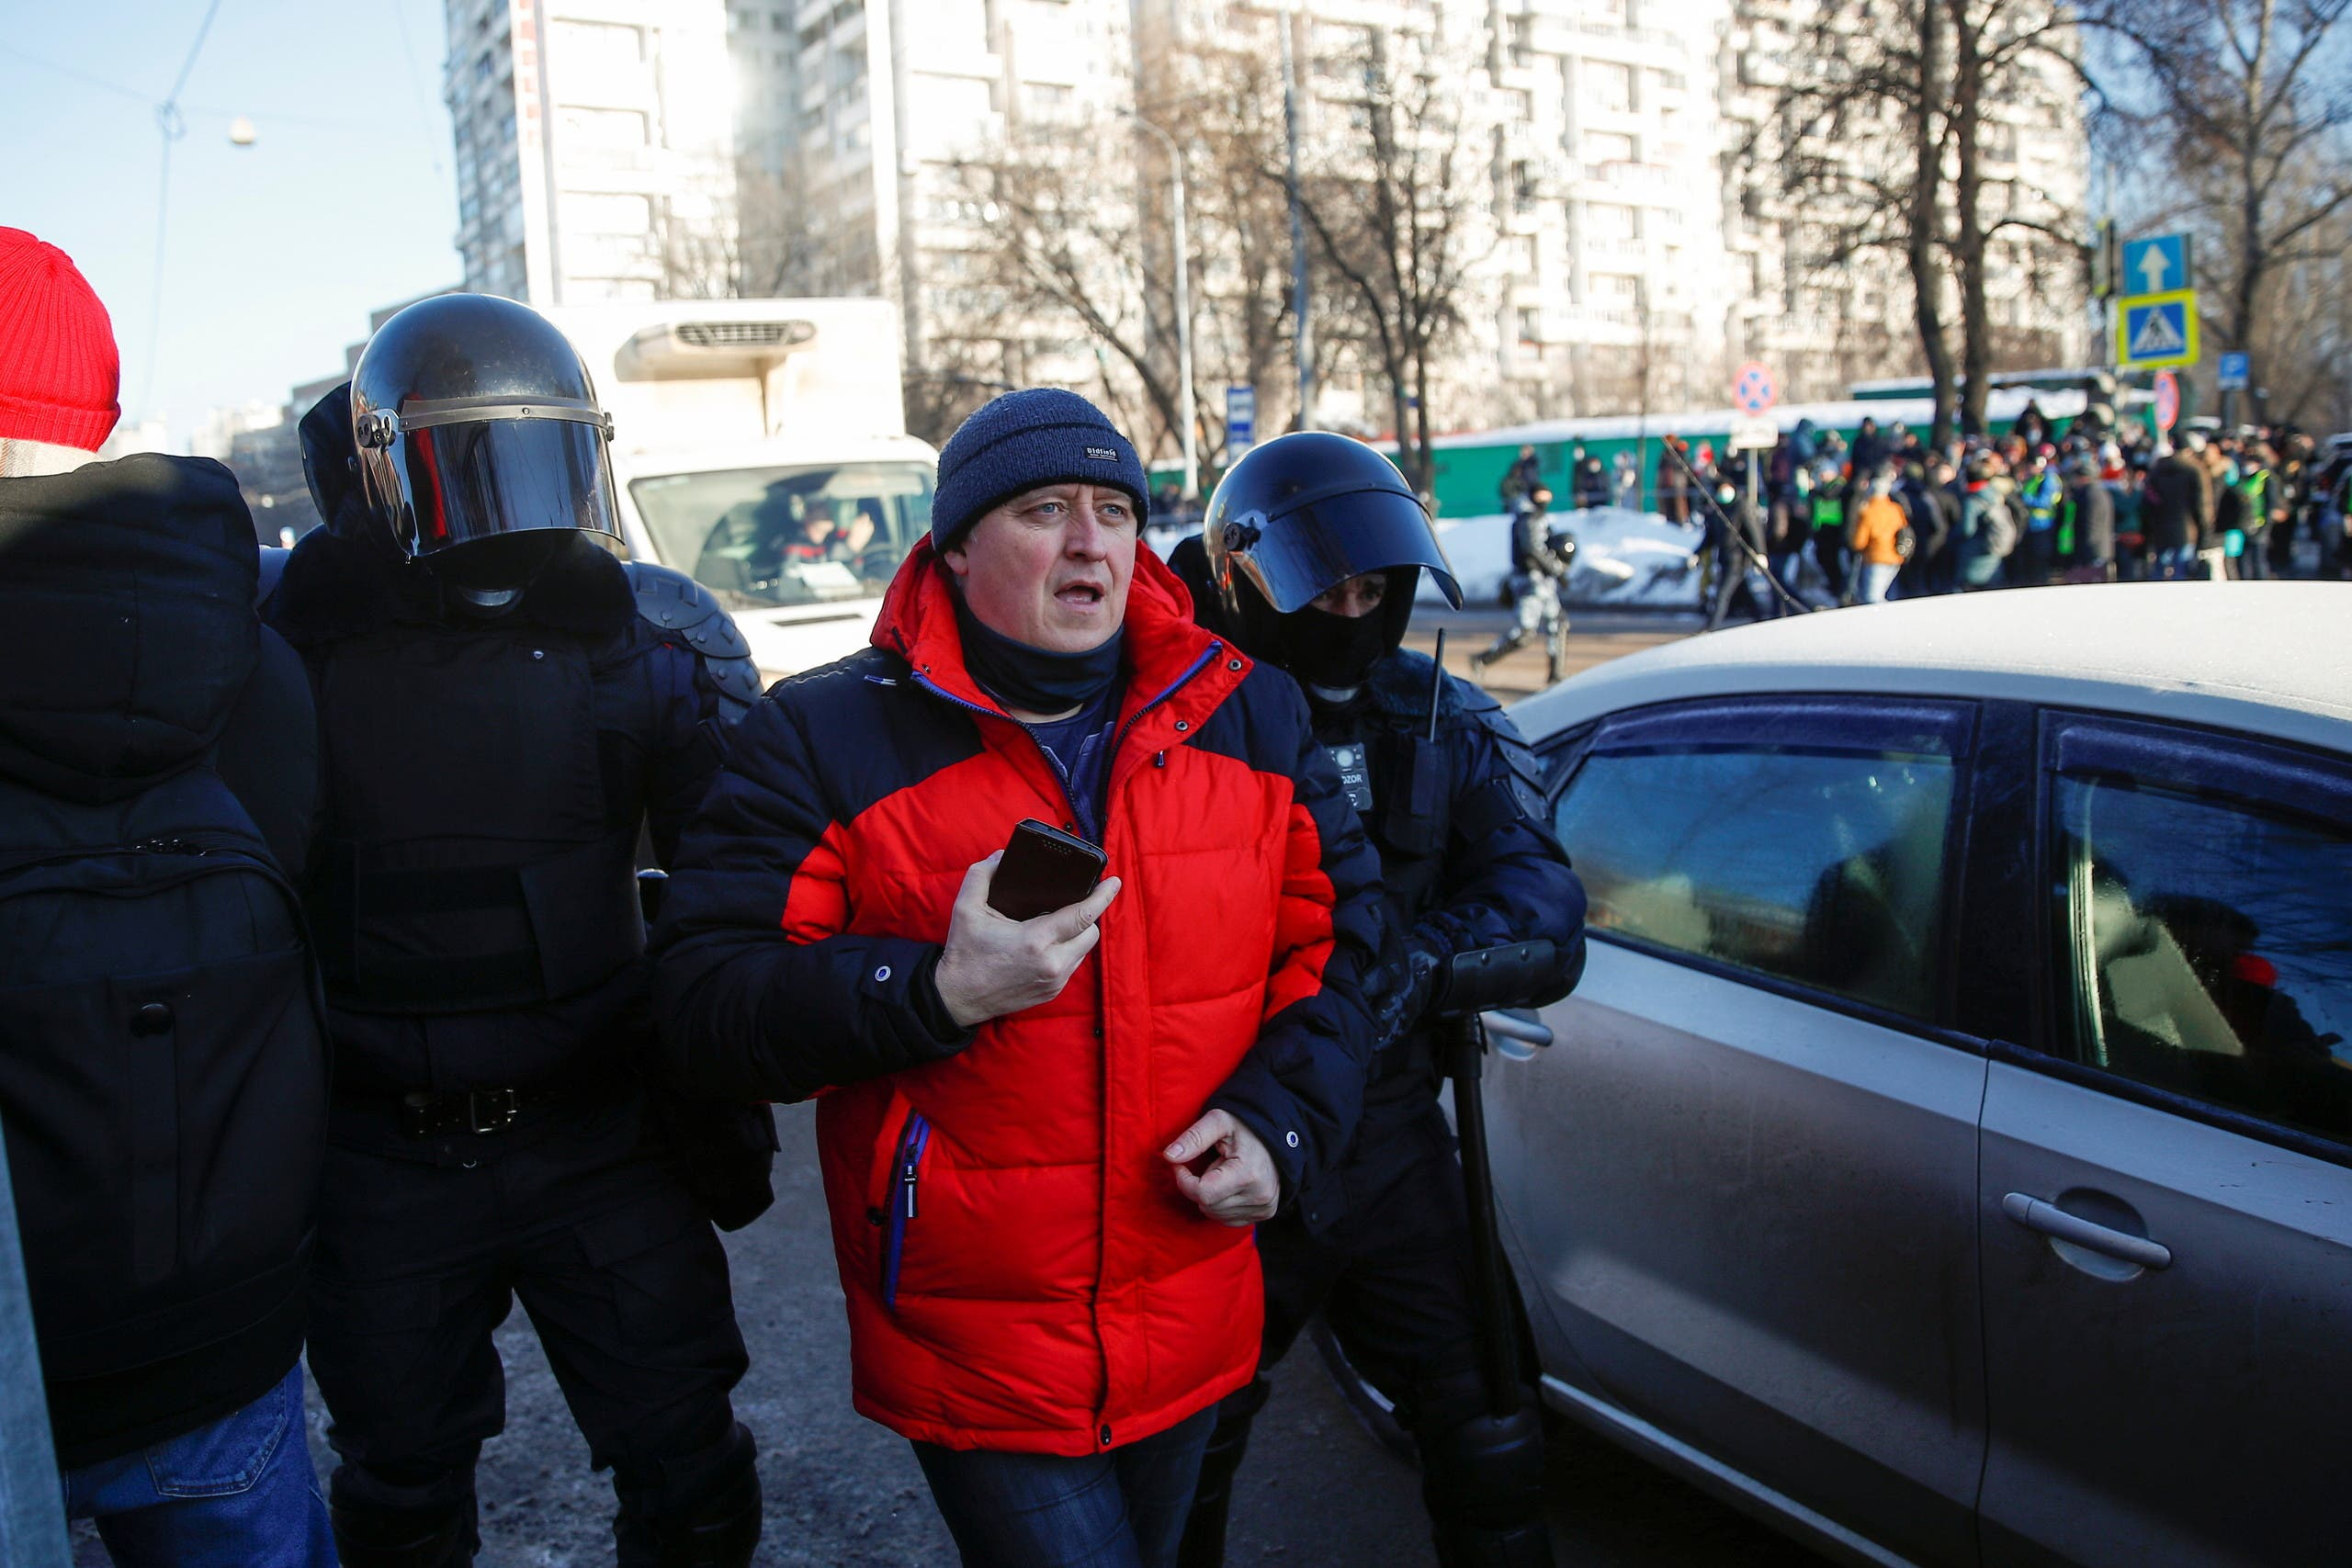 Law enforcement officers detain a man near a court building during a hearing to consider the case of Russian opposition leader Alexei Navalny, who is accused of flouting the terms of a suspended sentence for embezzlement, in Moscow, Russia February 2, 2021. (Reuters)